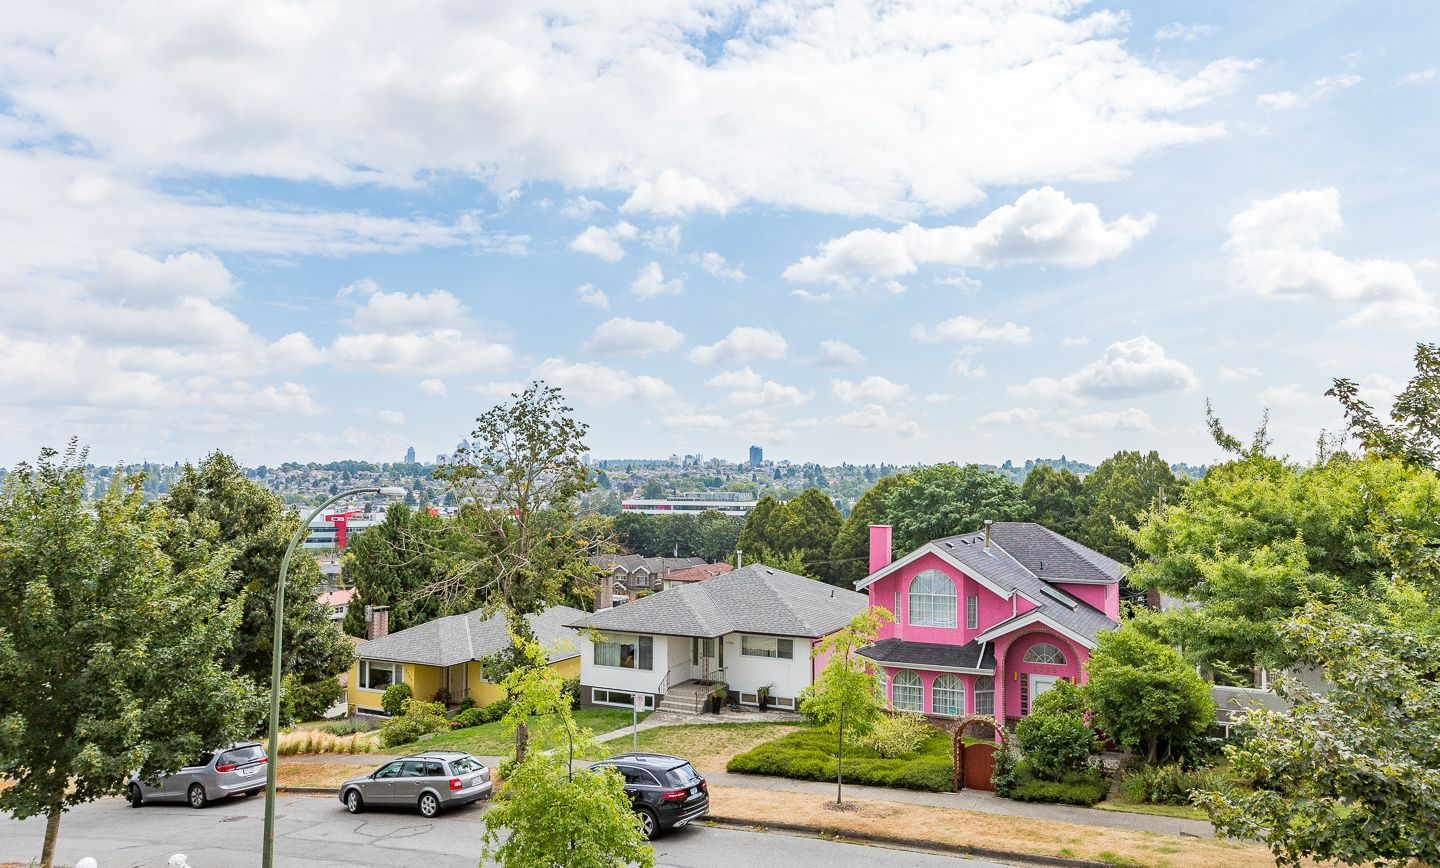 Main Photo: 2749 EAST 8TH AVE in VANCOUVER: Renfrew VE House for sale (Vancouver East)  : MLS®# R2612276